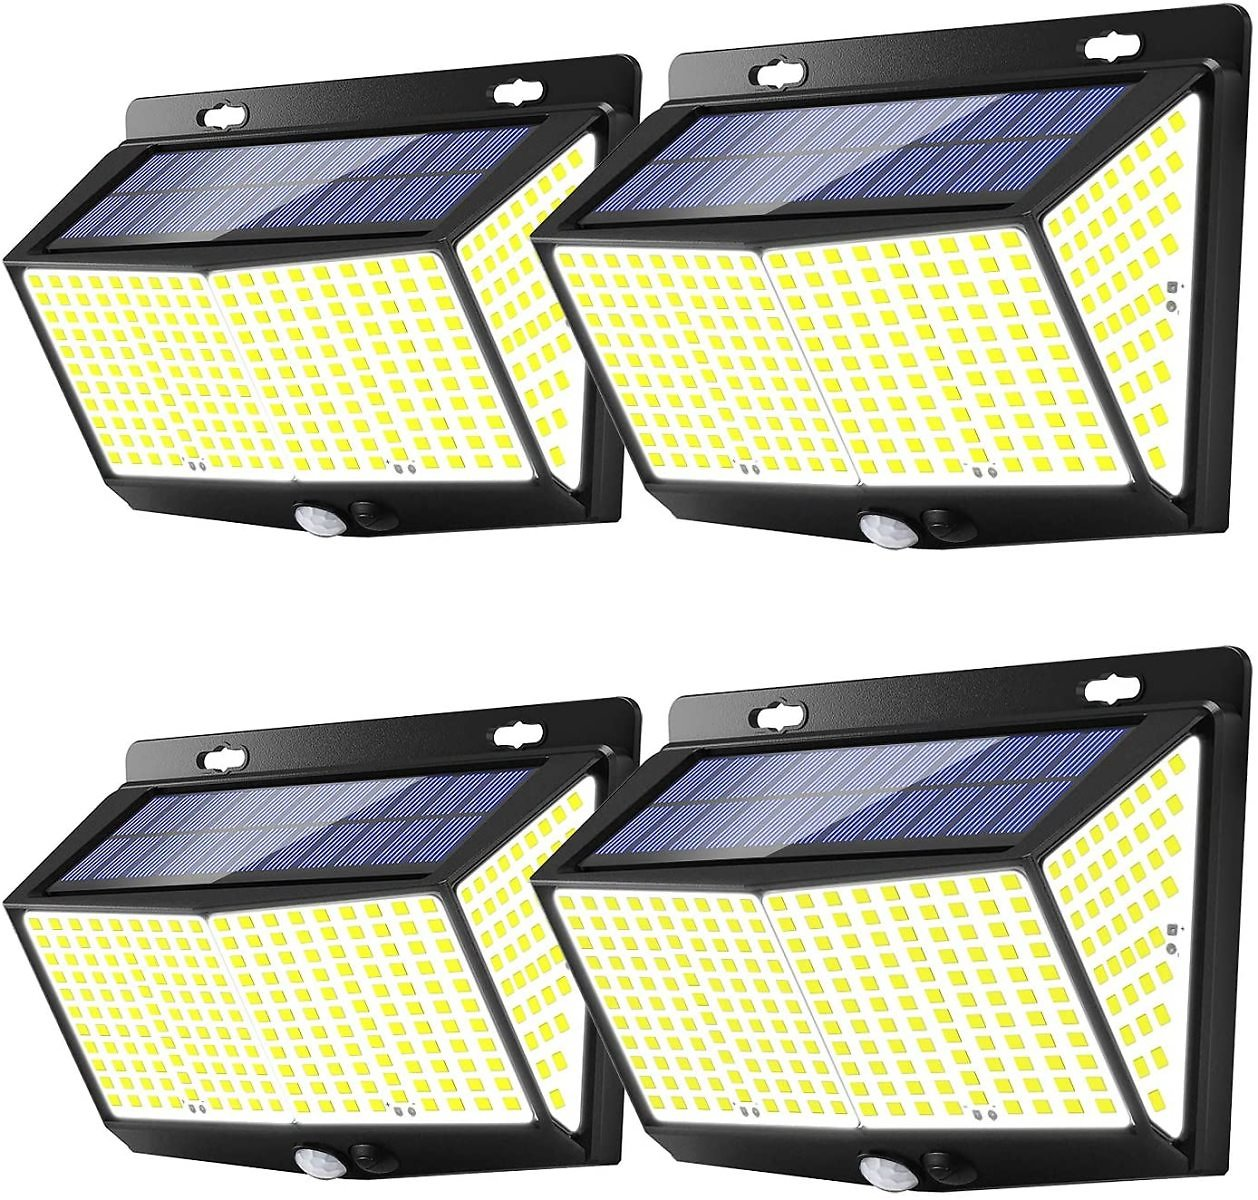 Solar Lights Outdoor 288 LED (4 Packs), Extra-Large, Exterior Wall Lights, Outdoor Solar Motion Sensor Lights with 3 Lighting Modes, 270° Wide-Angle Lighting, IP65 Waterproof